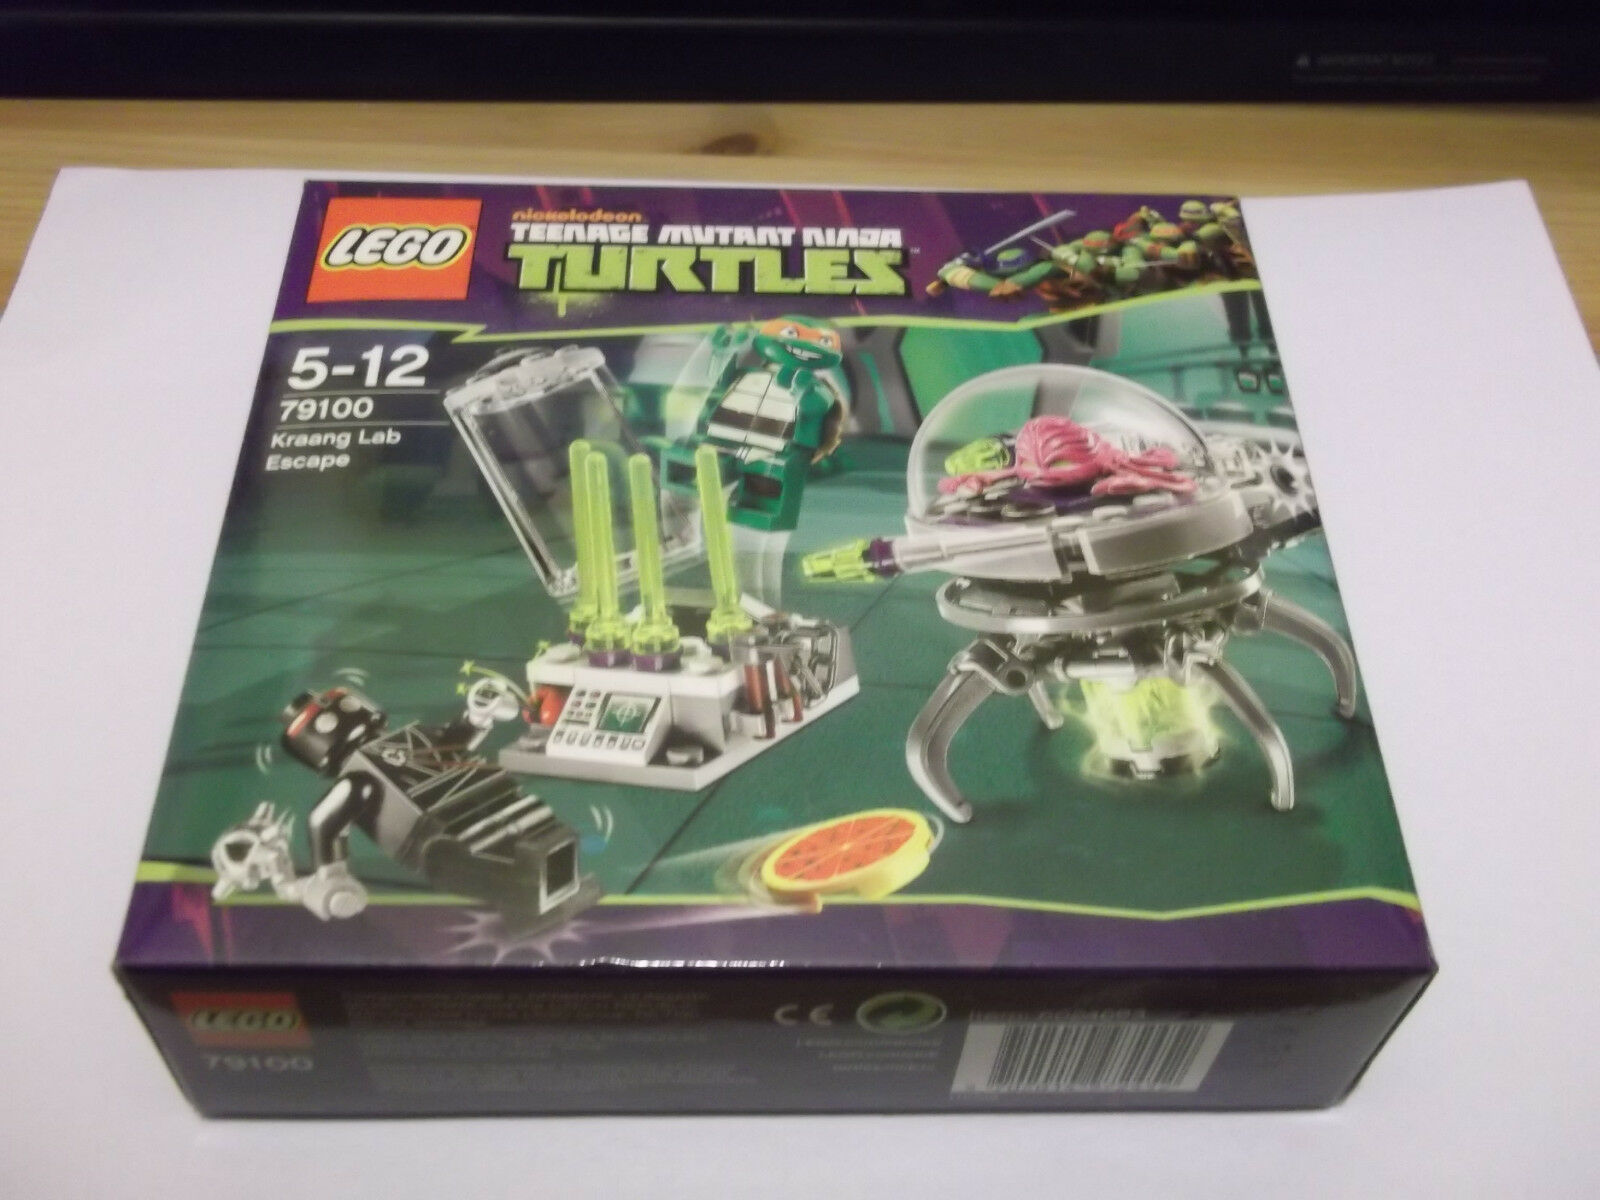 Lego Teenage Mutant Ninja Turtles 79100 KRAANG LAB ESCAPE Factory Sealed